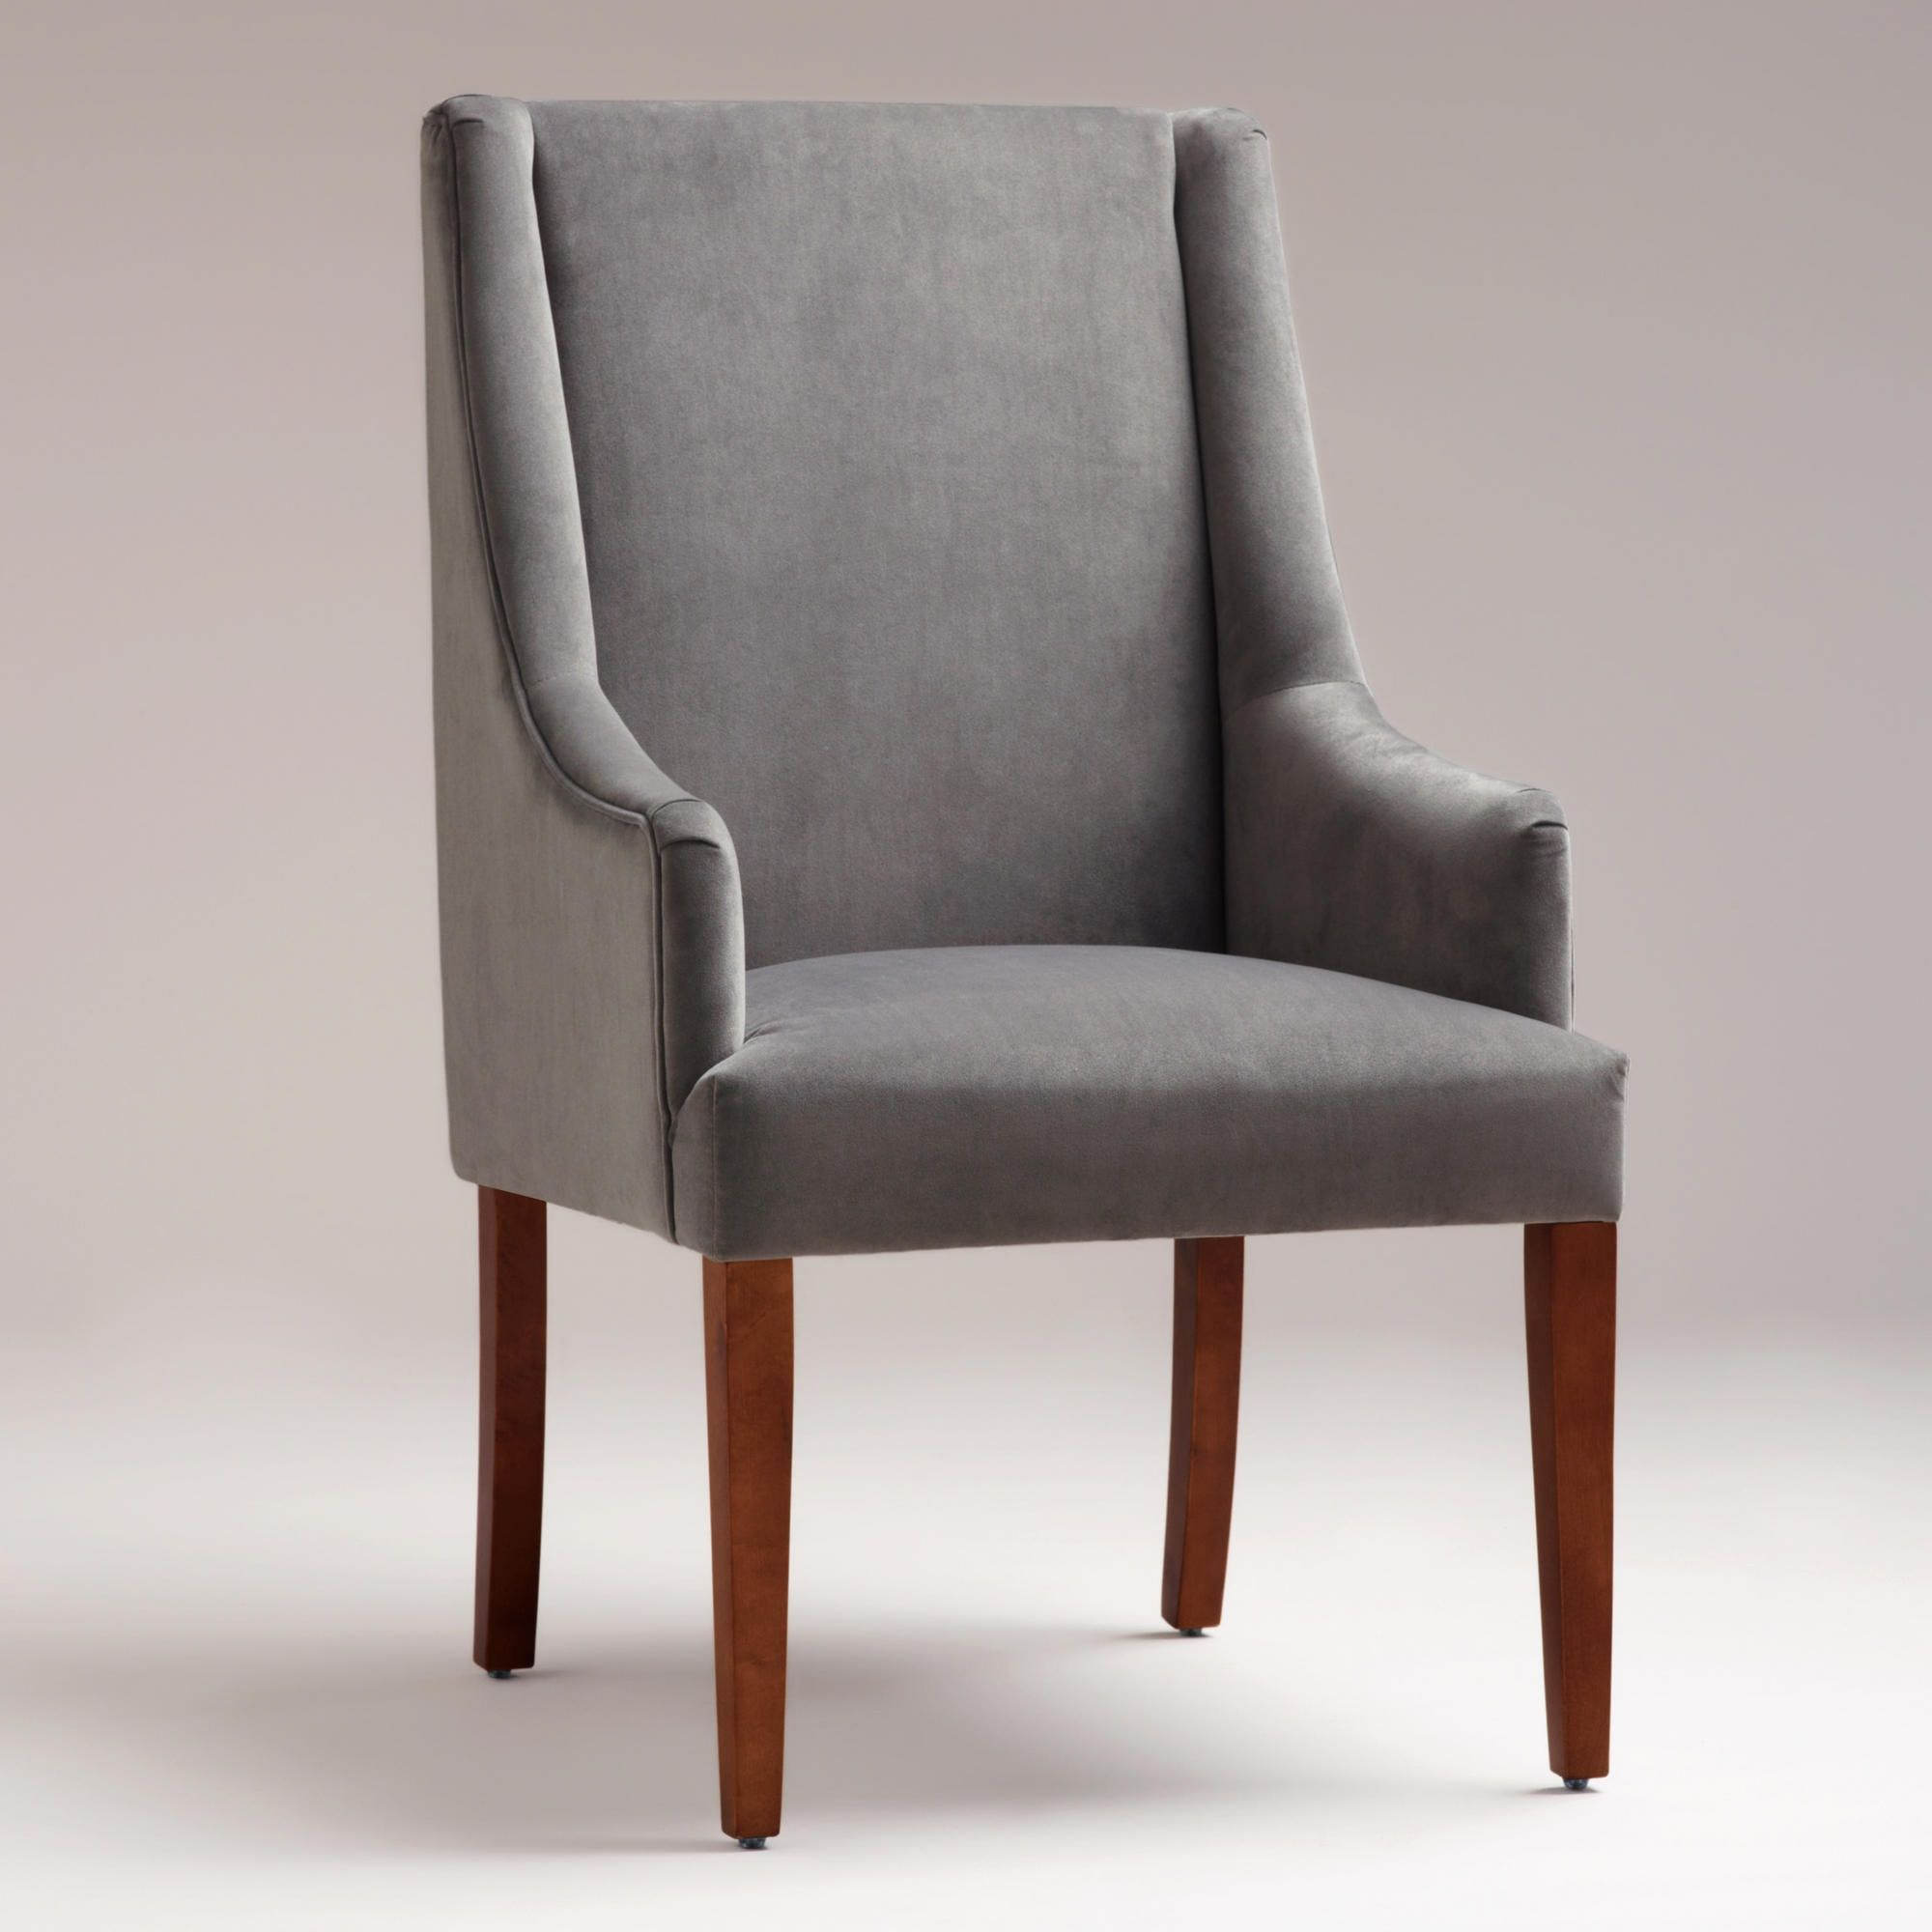 Concrete Hayden Chair From World Market.. On Sale For $89